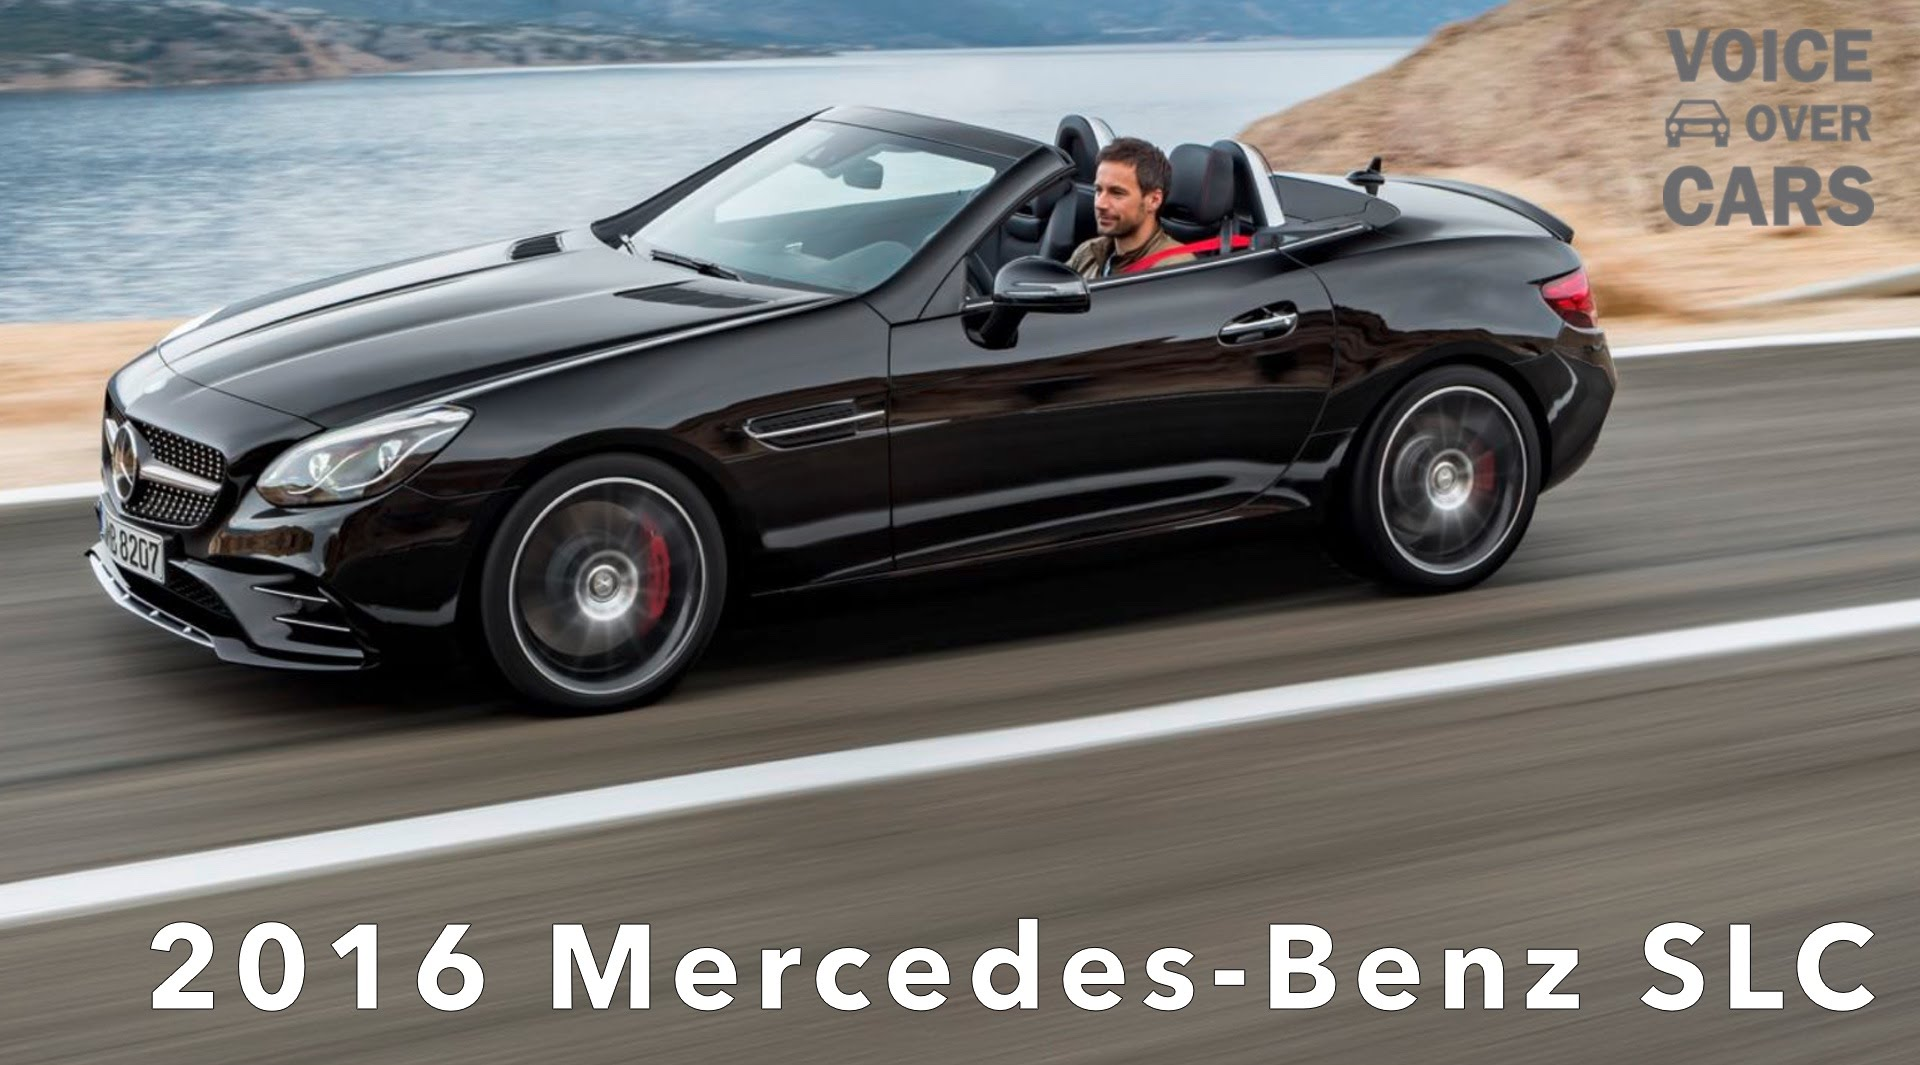 Mercedes Benz SLC – Mercedes AMG SLC 43 – Fakten – Informationen – Meinung | Voice over Cars